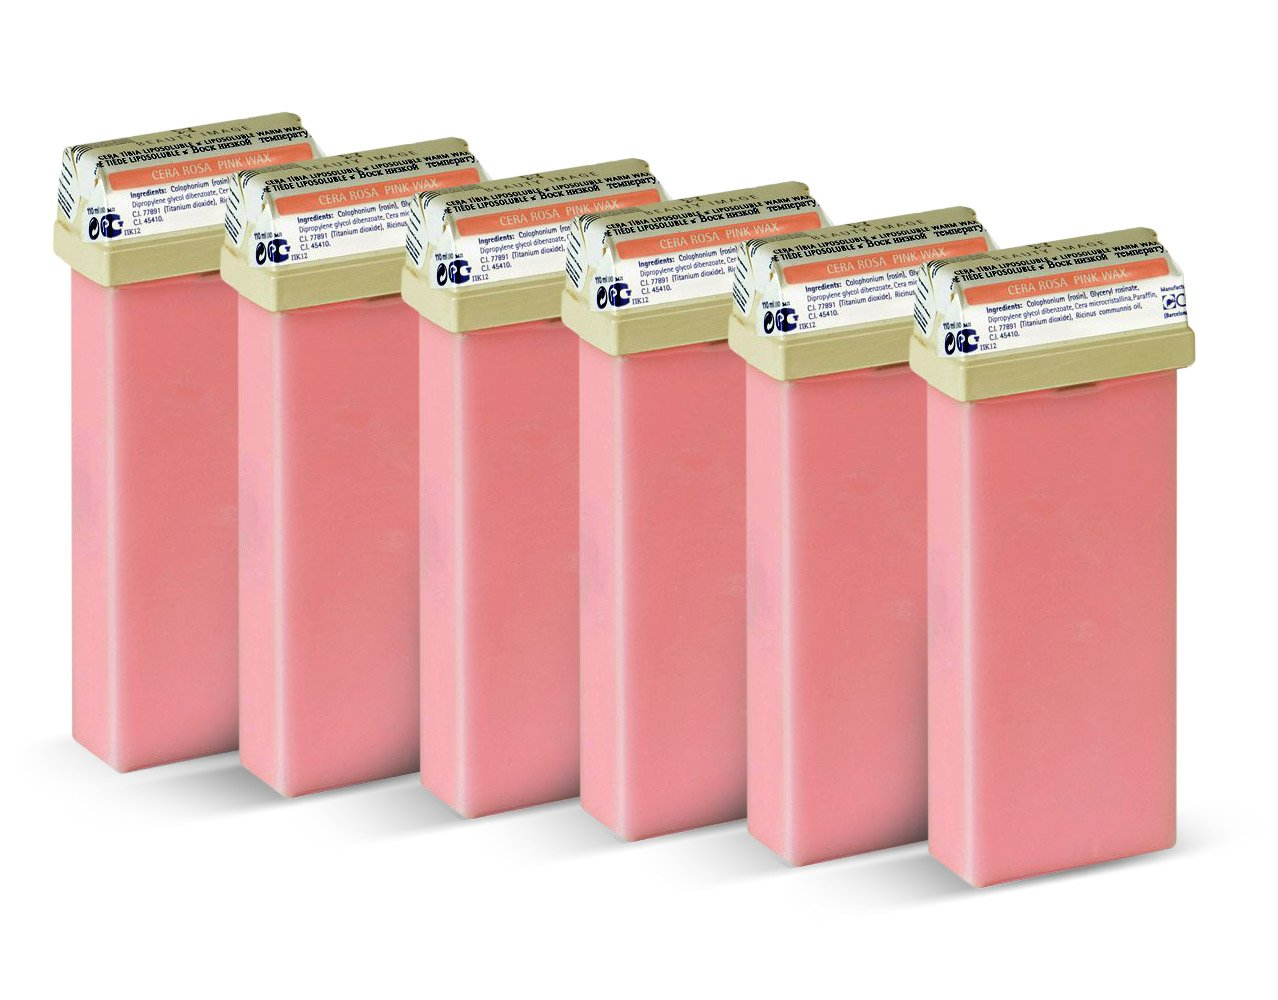 Beauty Image Pink Creme Warm Wax Roll On - Pack of 6 CEMSA 100002x6